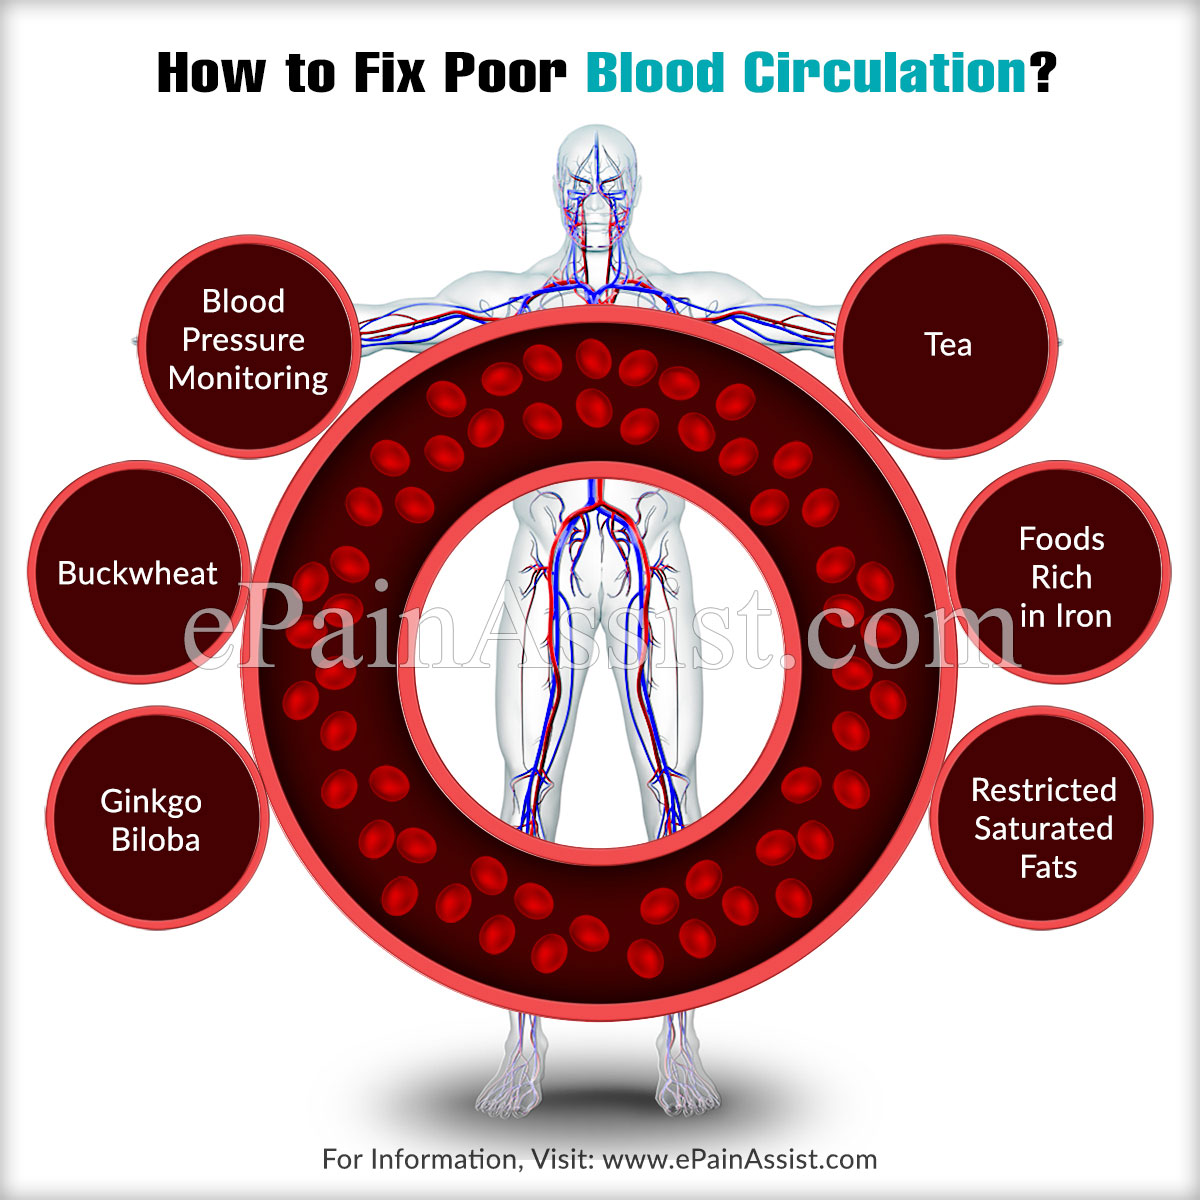 How to Fix Poor Blood Circulation?